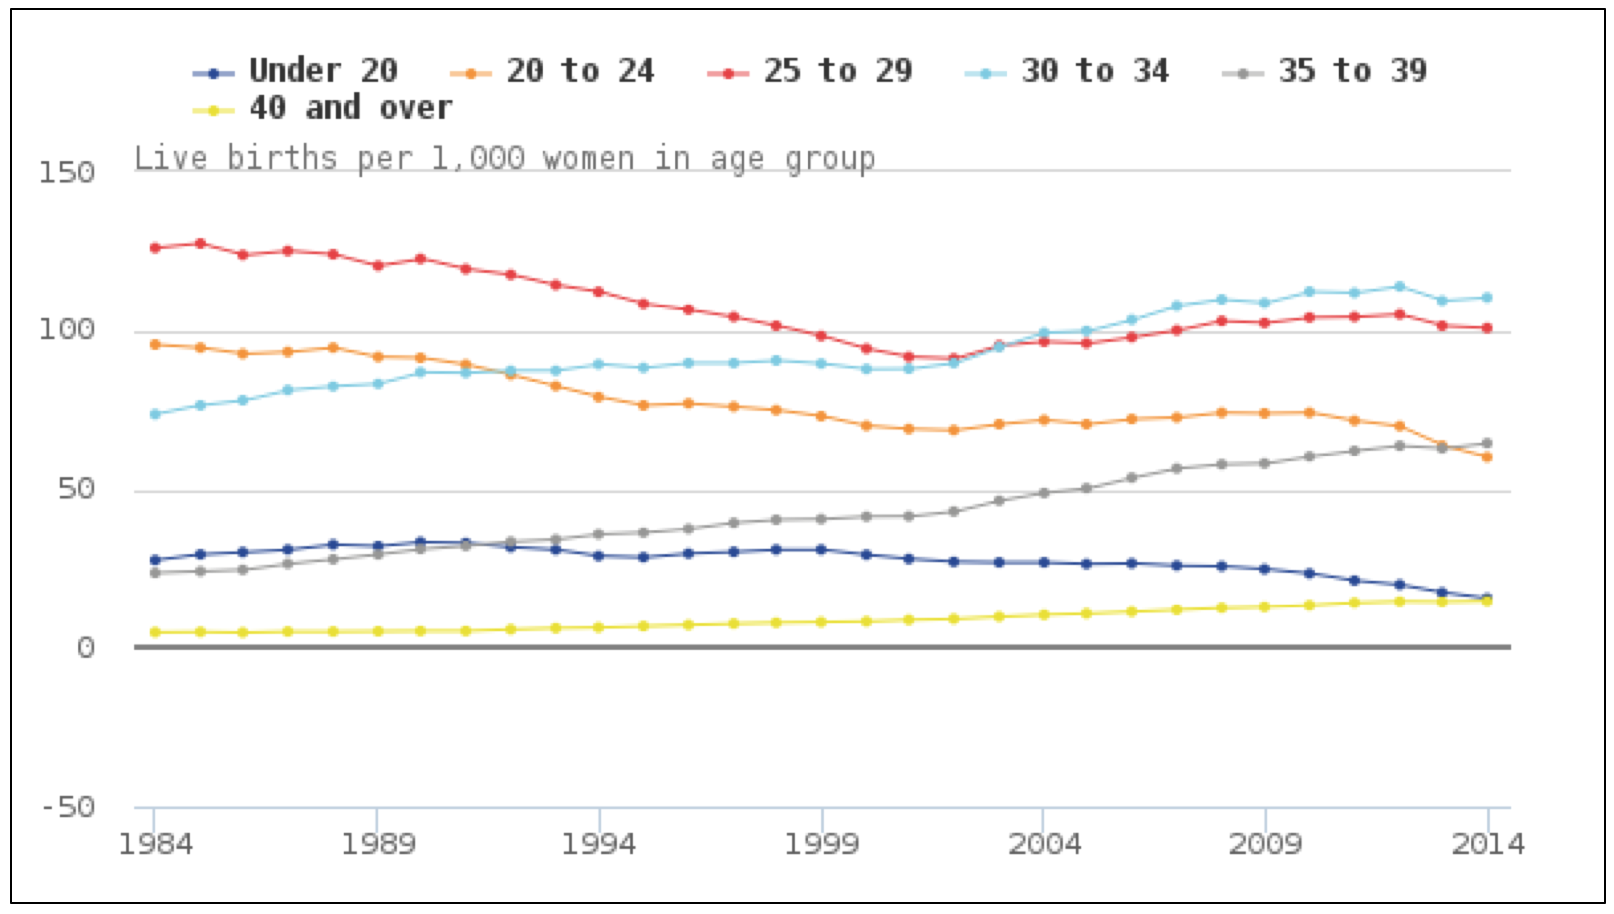 Live births per 1000 women in age group